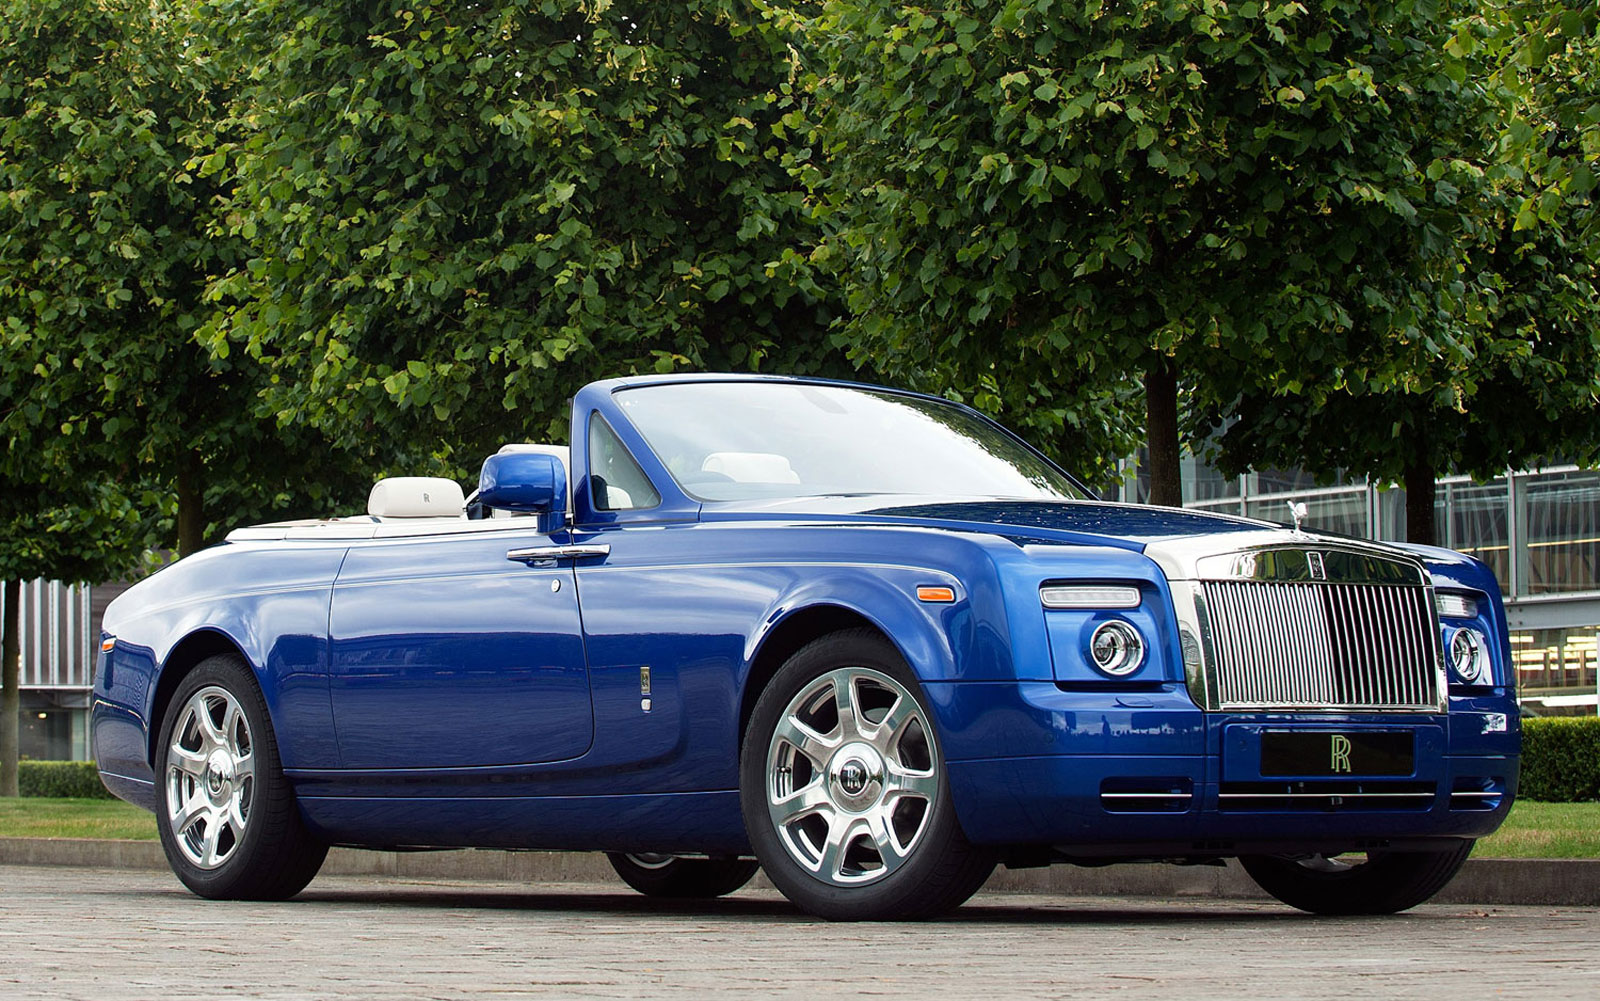 rolls royce presents masterpiece london 2011 phantom drophead coupe extravaganzi. Black Bedroom Furniture Sets. Home Design Ideas